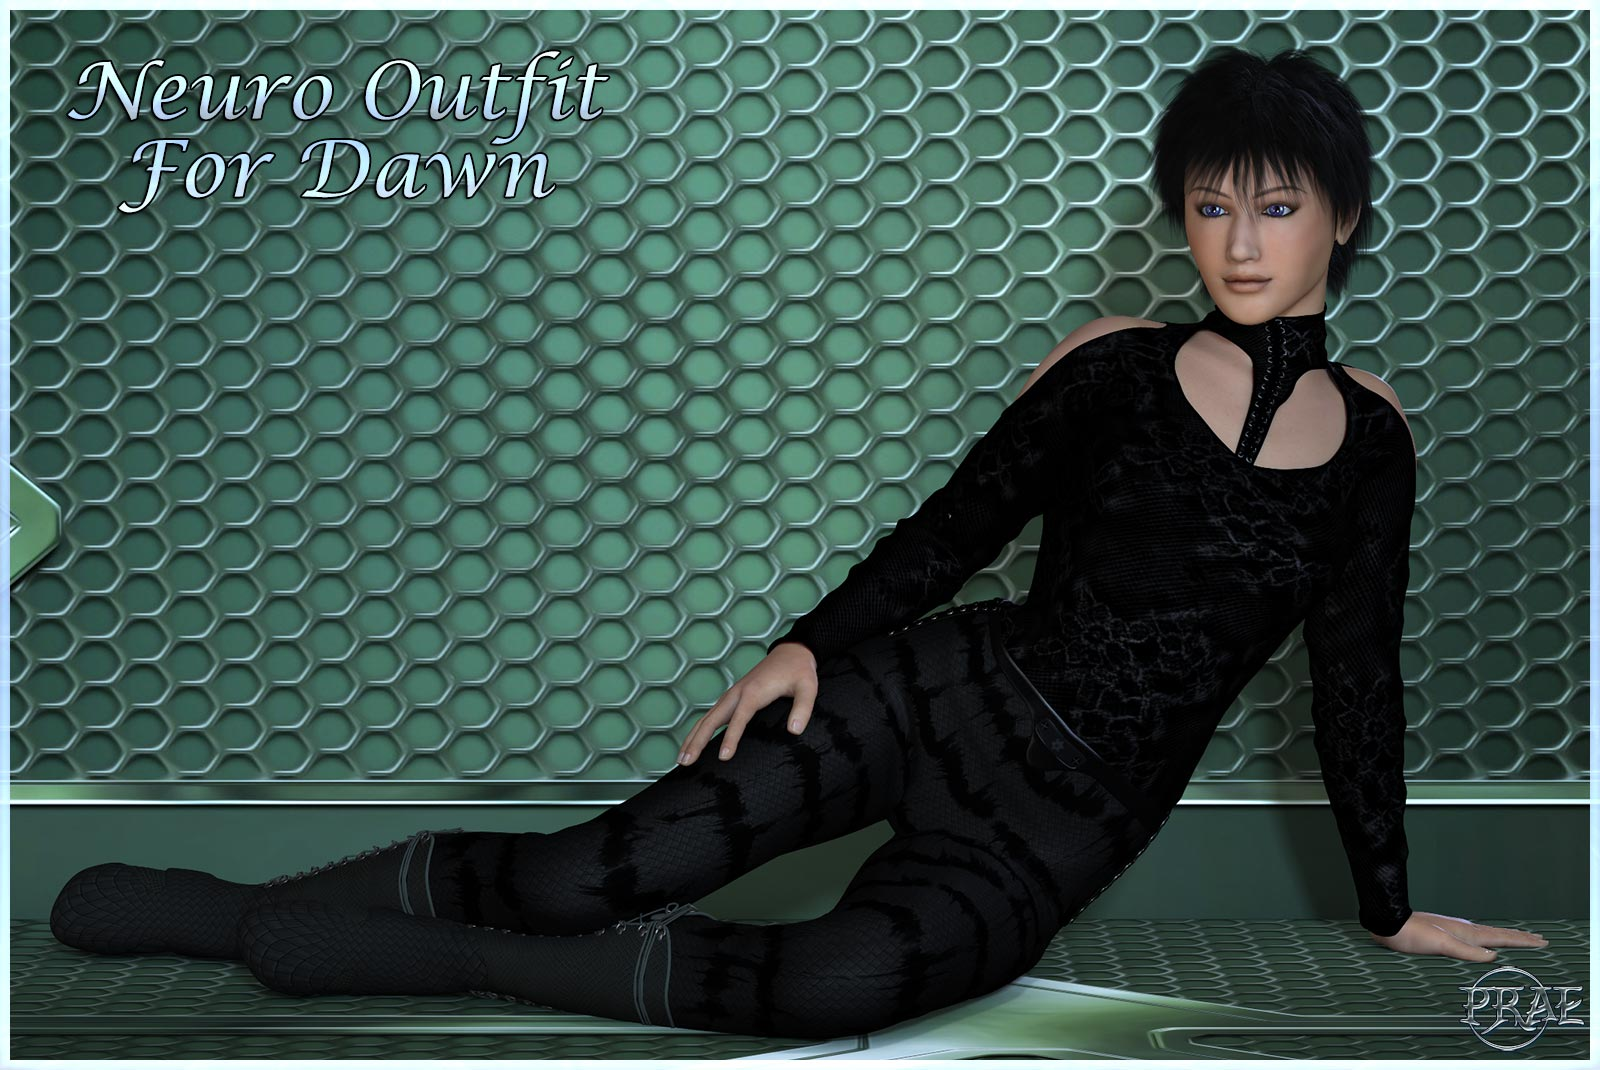 'Neuro Outfit for Dawn